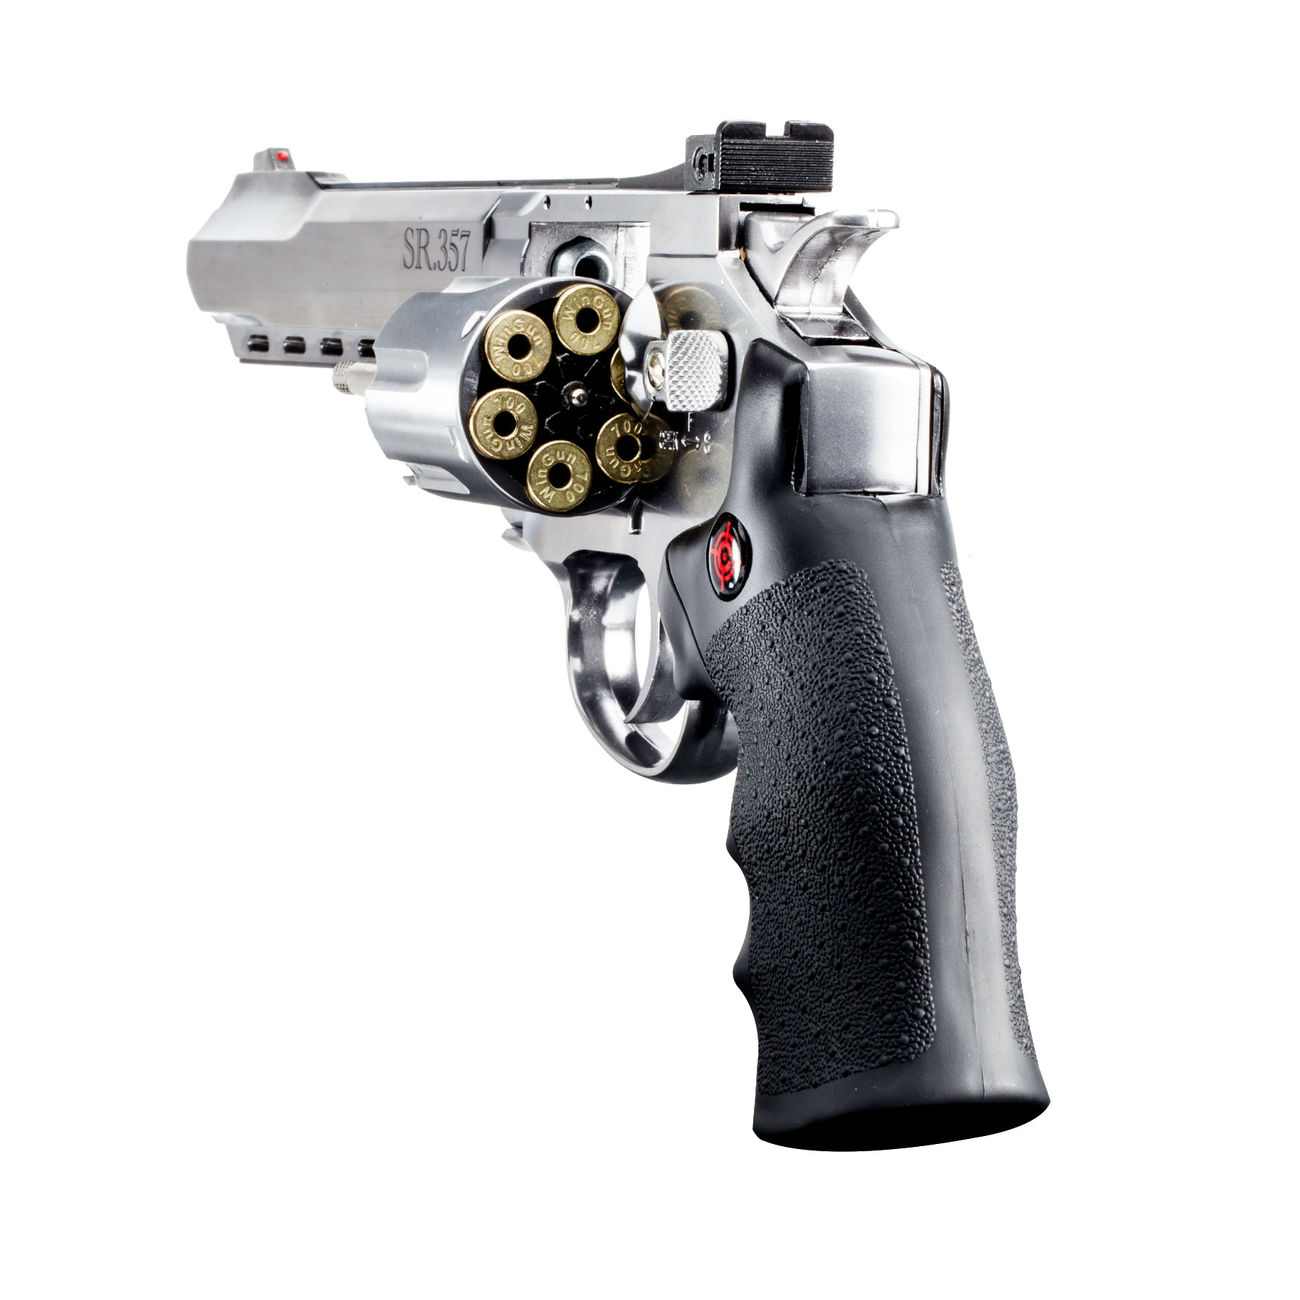 Crosman SR 357 CO2 Revolver 4,5 mm BB silber 3